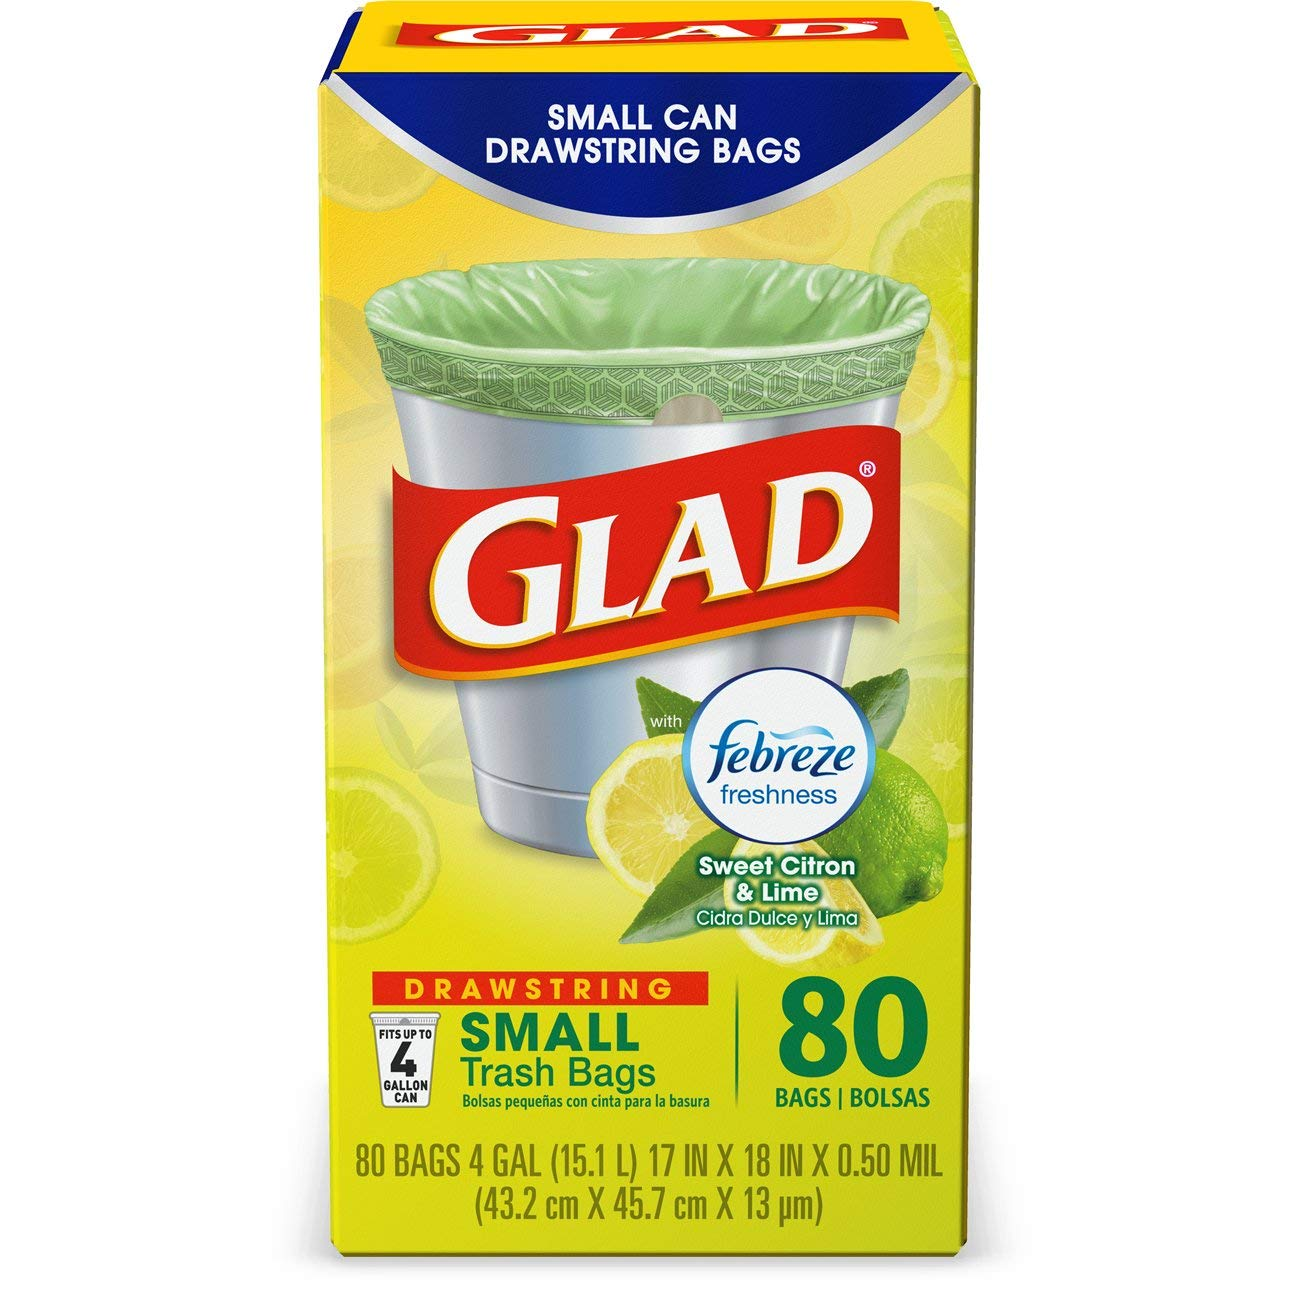 Glad OdorShield Small Drawstring Trash Bags - Febreze Sweet Citron & Lime - 4 Gallon - 80 Count